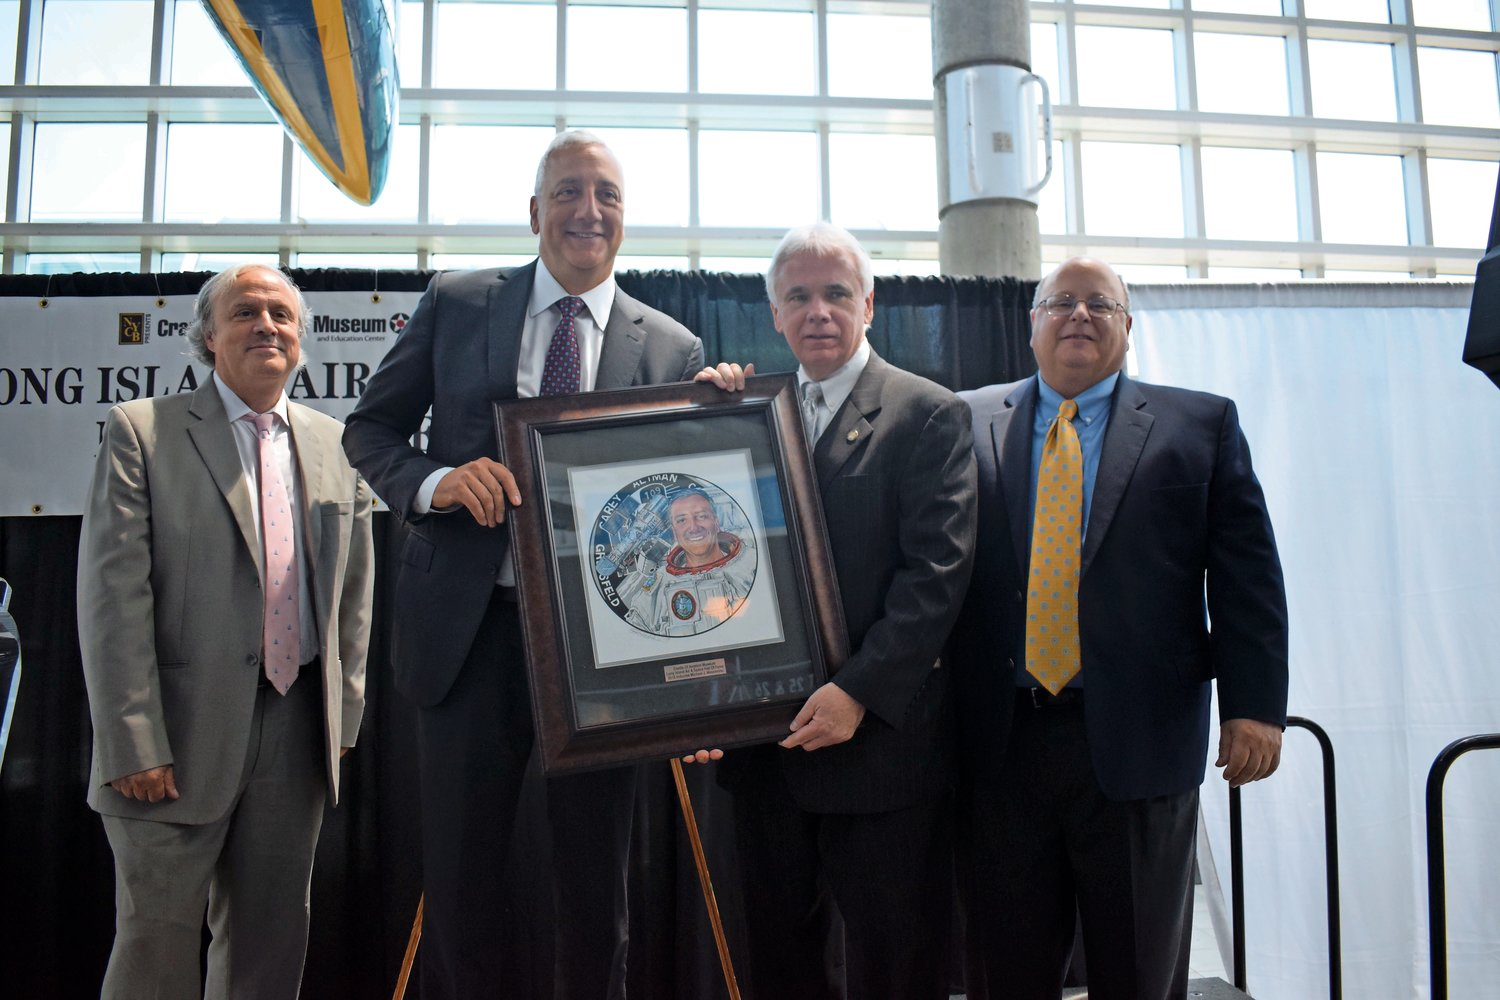 Franklin Square-native and astronaut Michael Massimino, second from the left, was inducted into the Long Island Air & Space Hall of Fame in 2018.